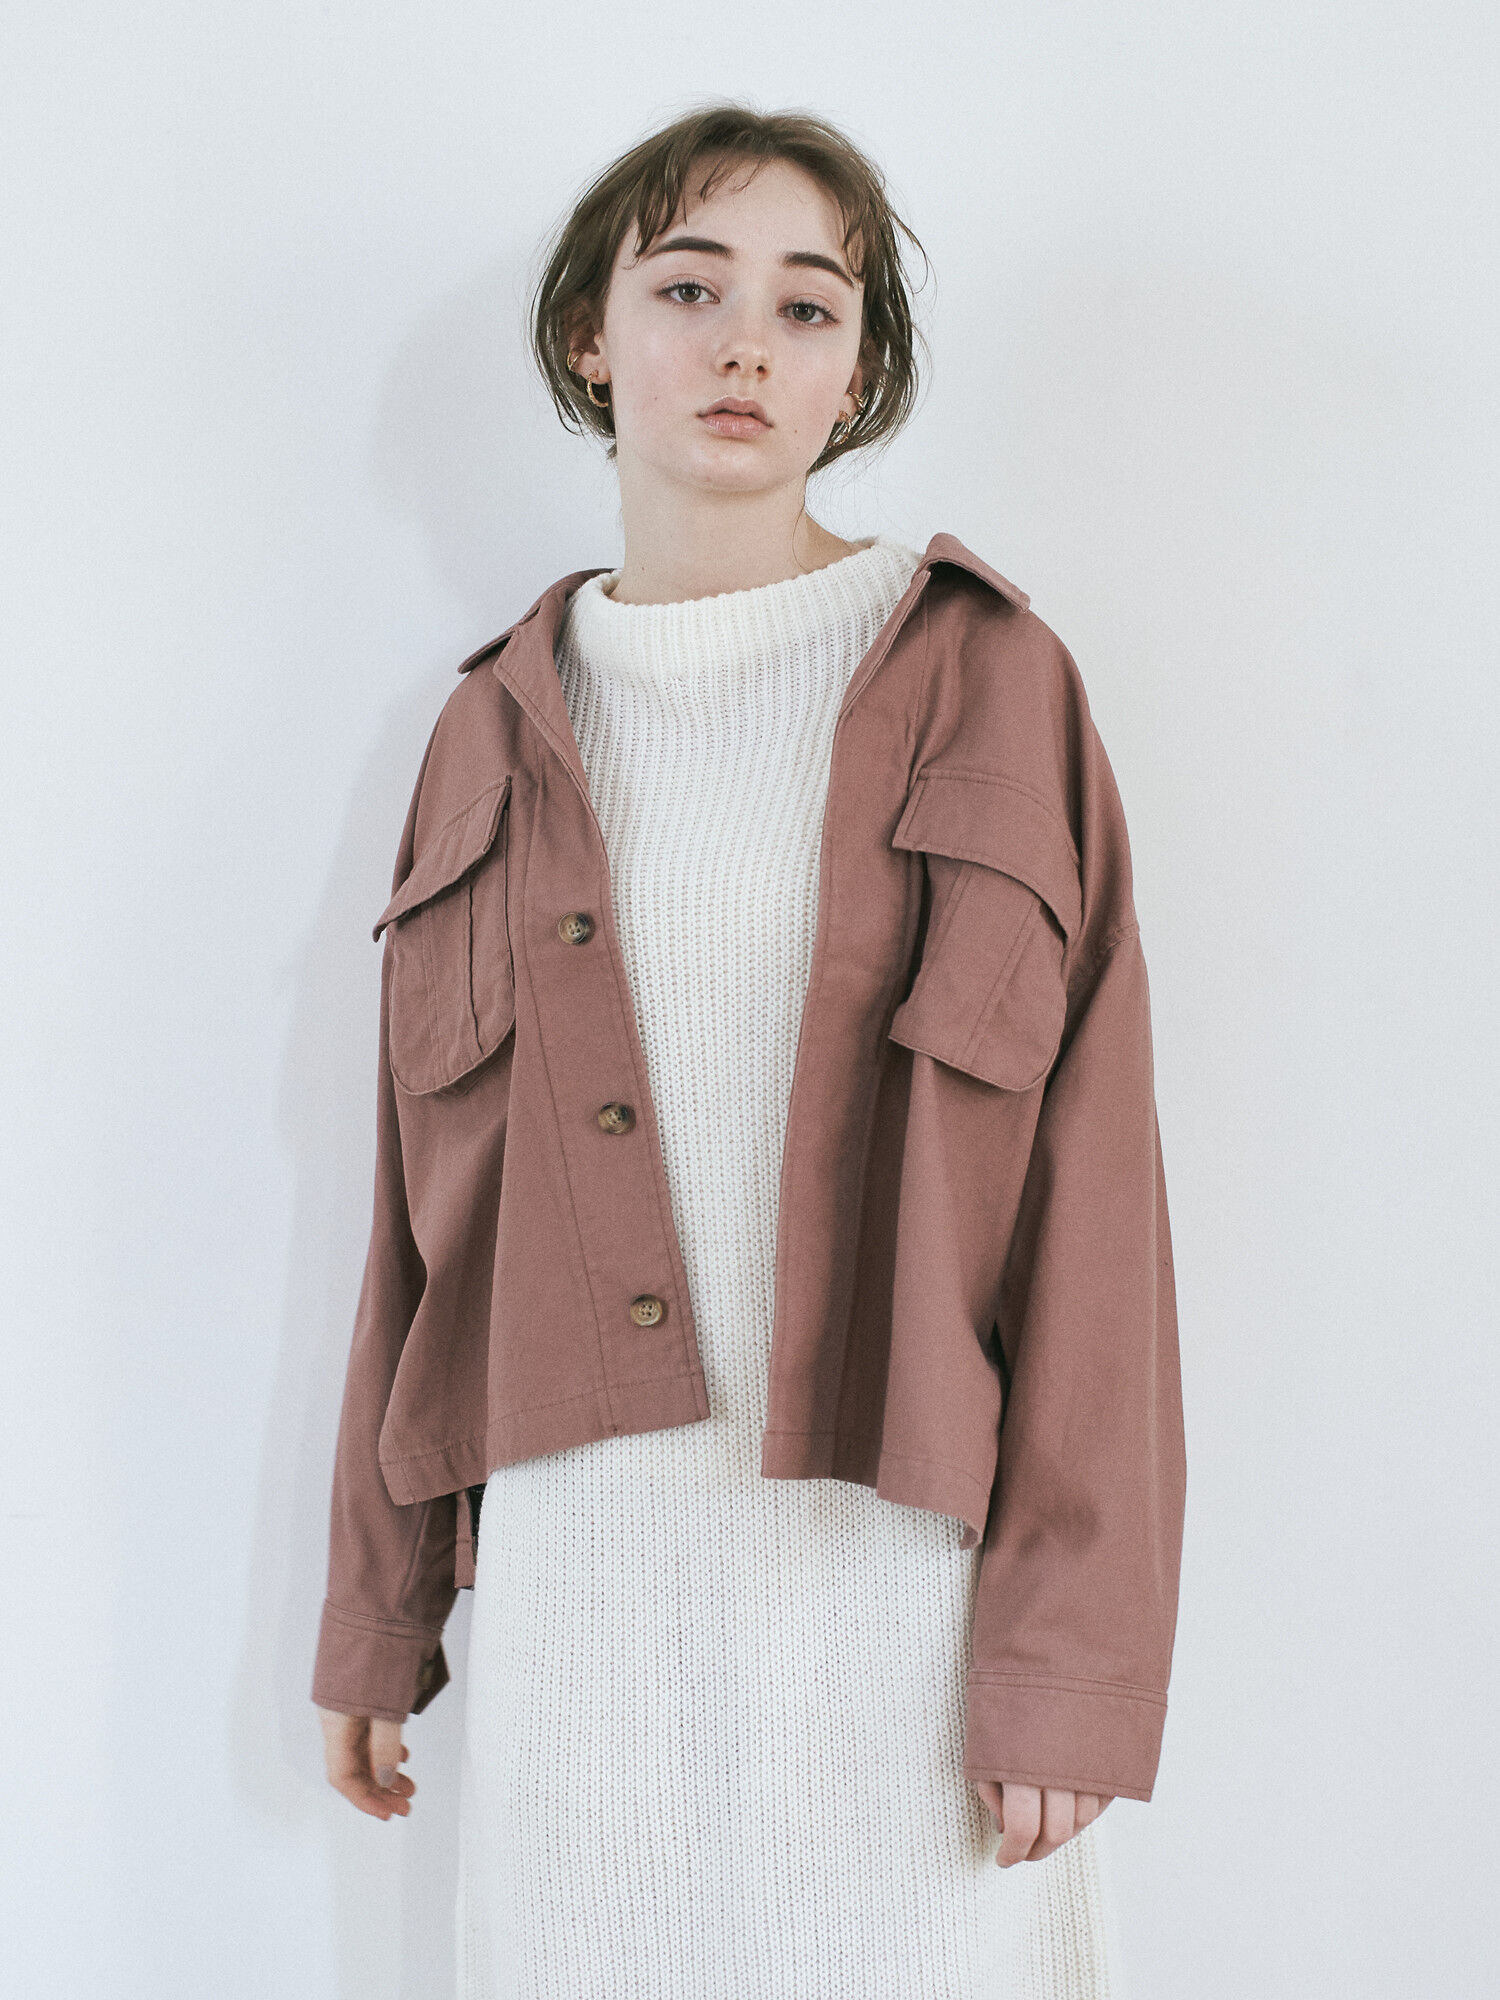 Earth, Music & Ecology Tanis Jacket - Pink